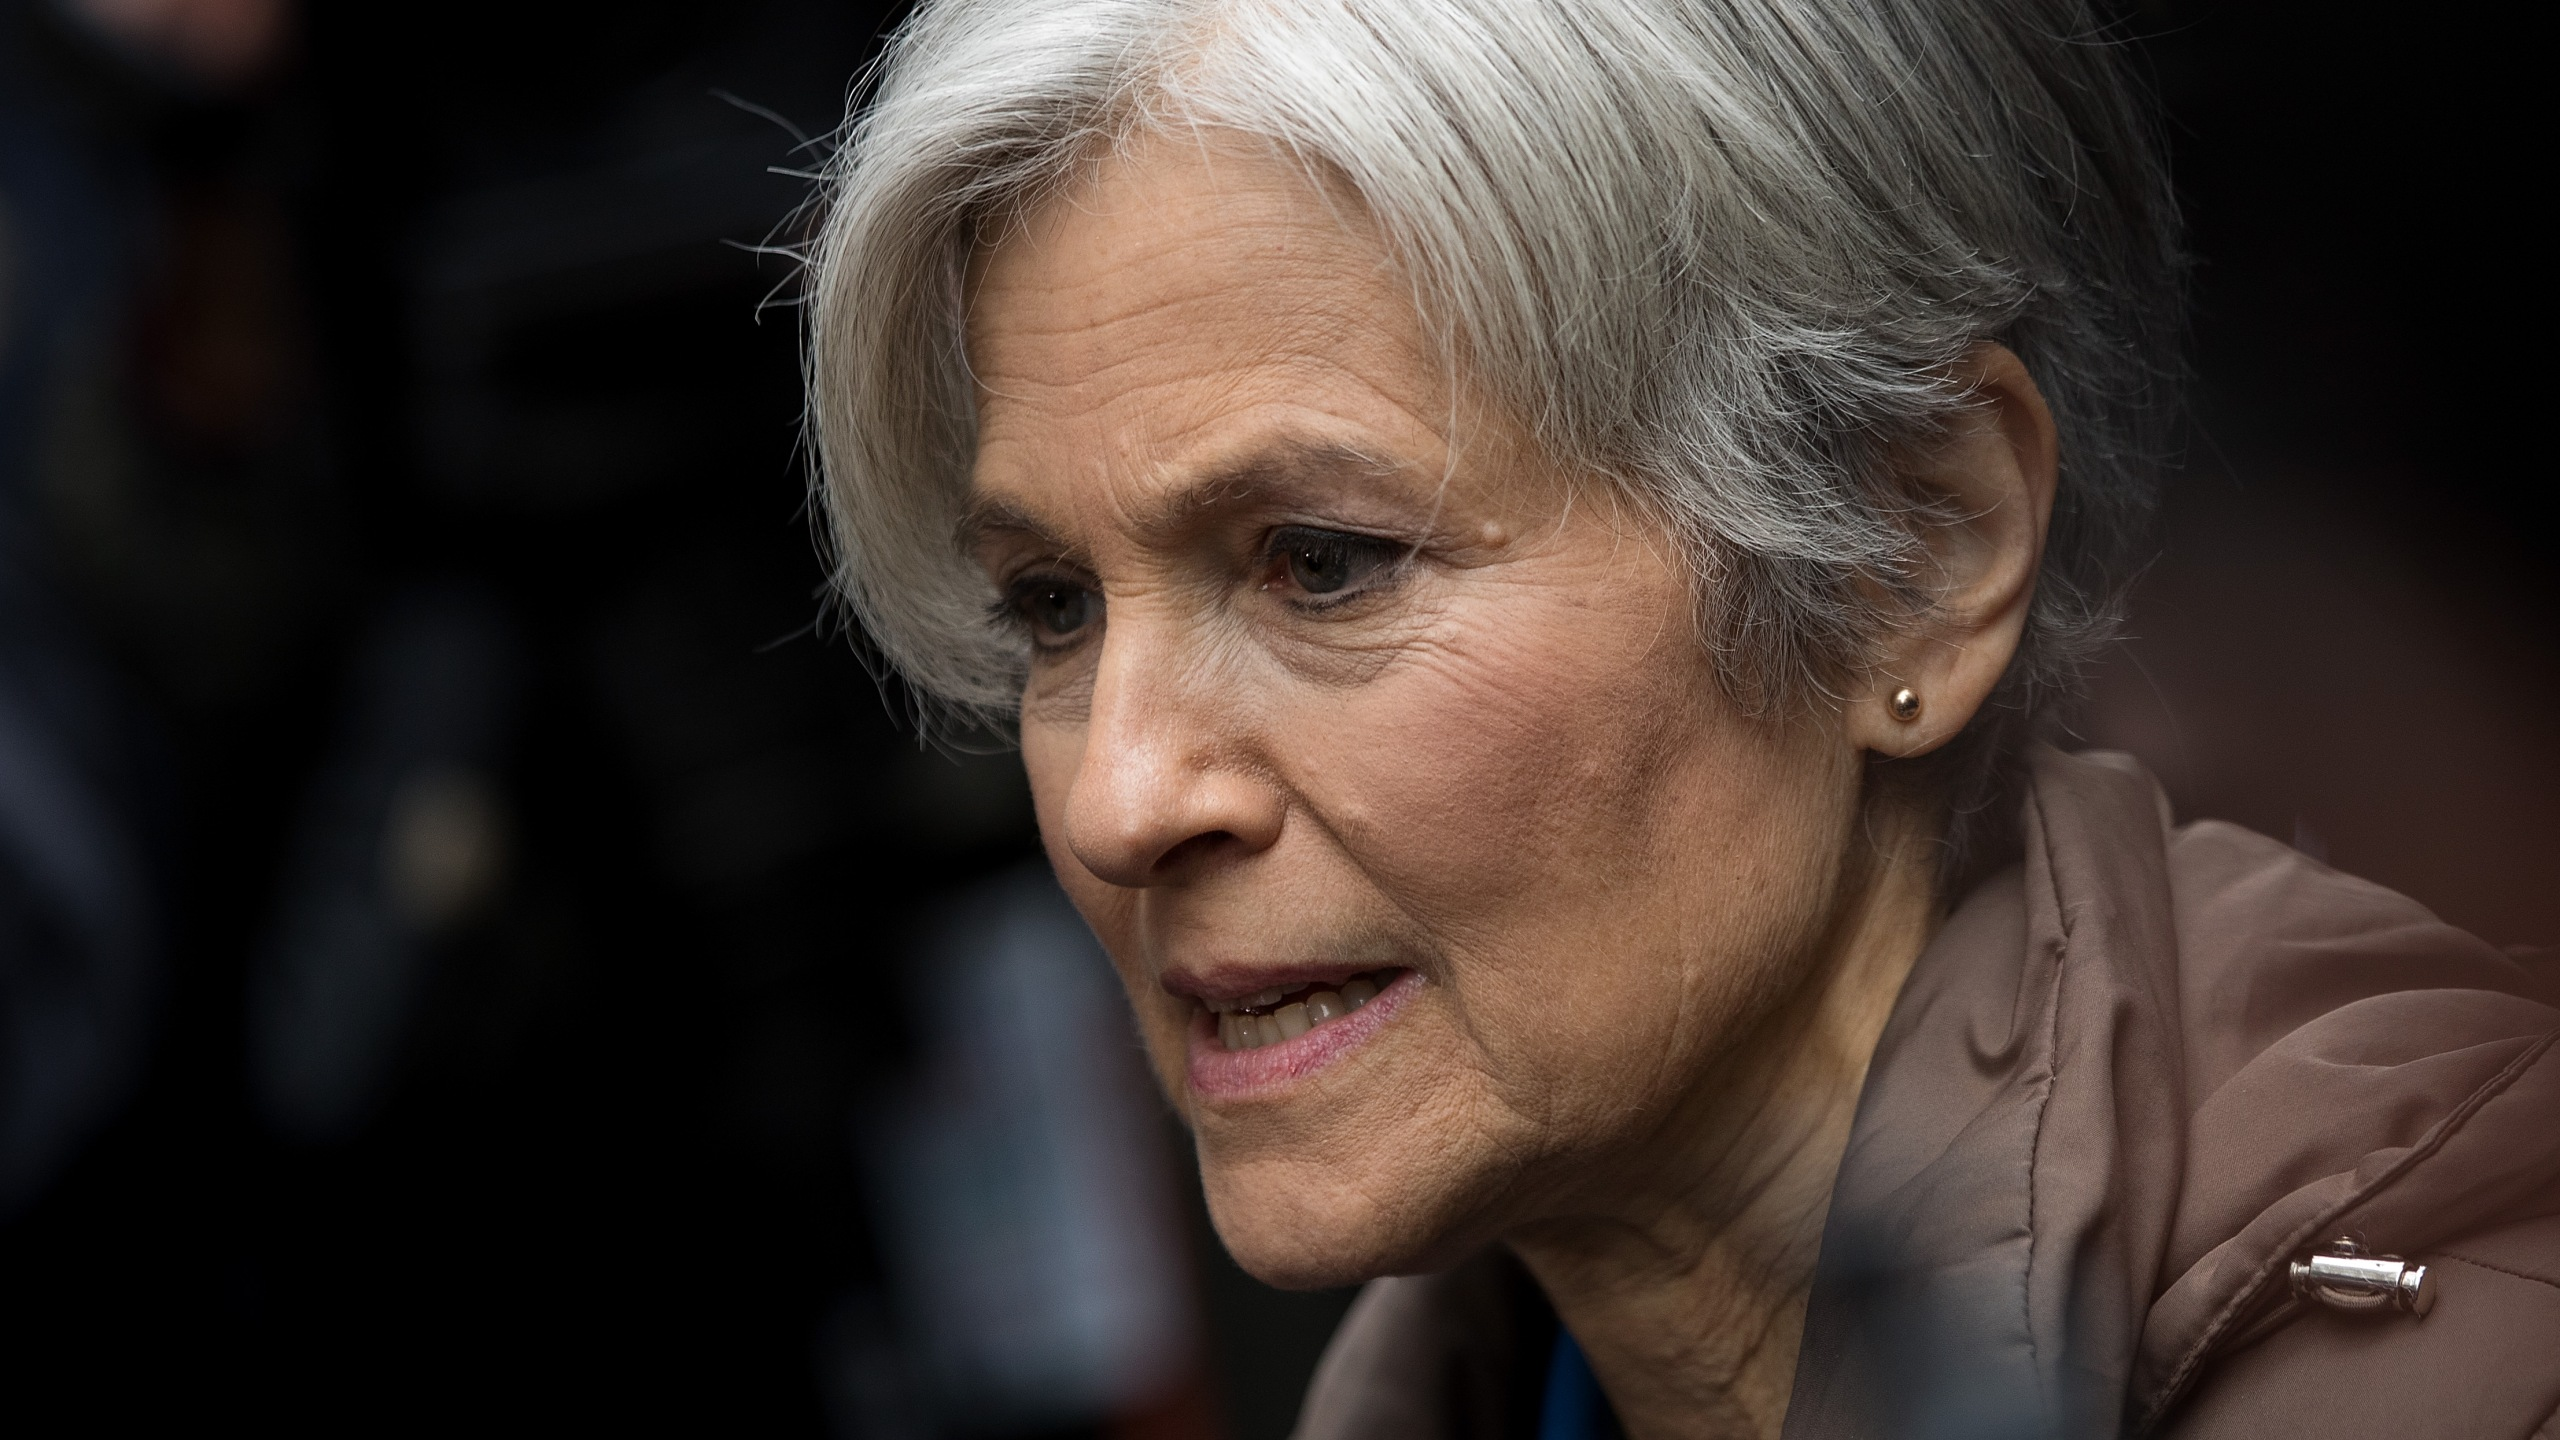 Green Party presidential candidate Jill Stein speaks at a news conference on Fifth Avenue across the street from Trump Tower on Dec. 5, 2016. (Credit: Drew Angerer/Getty Images)